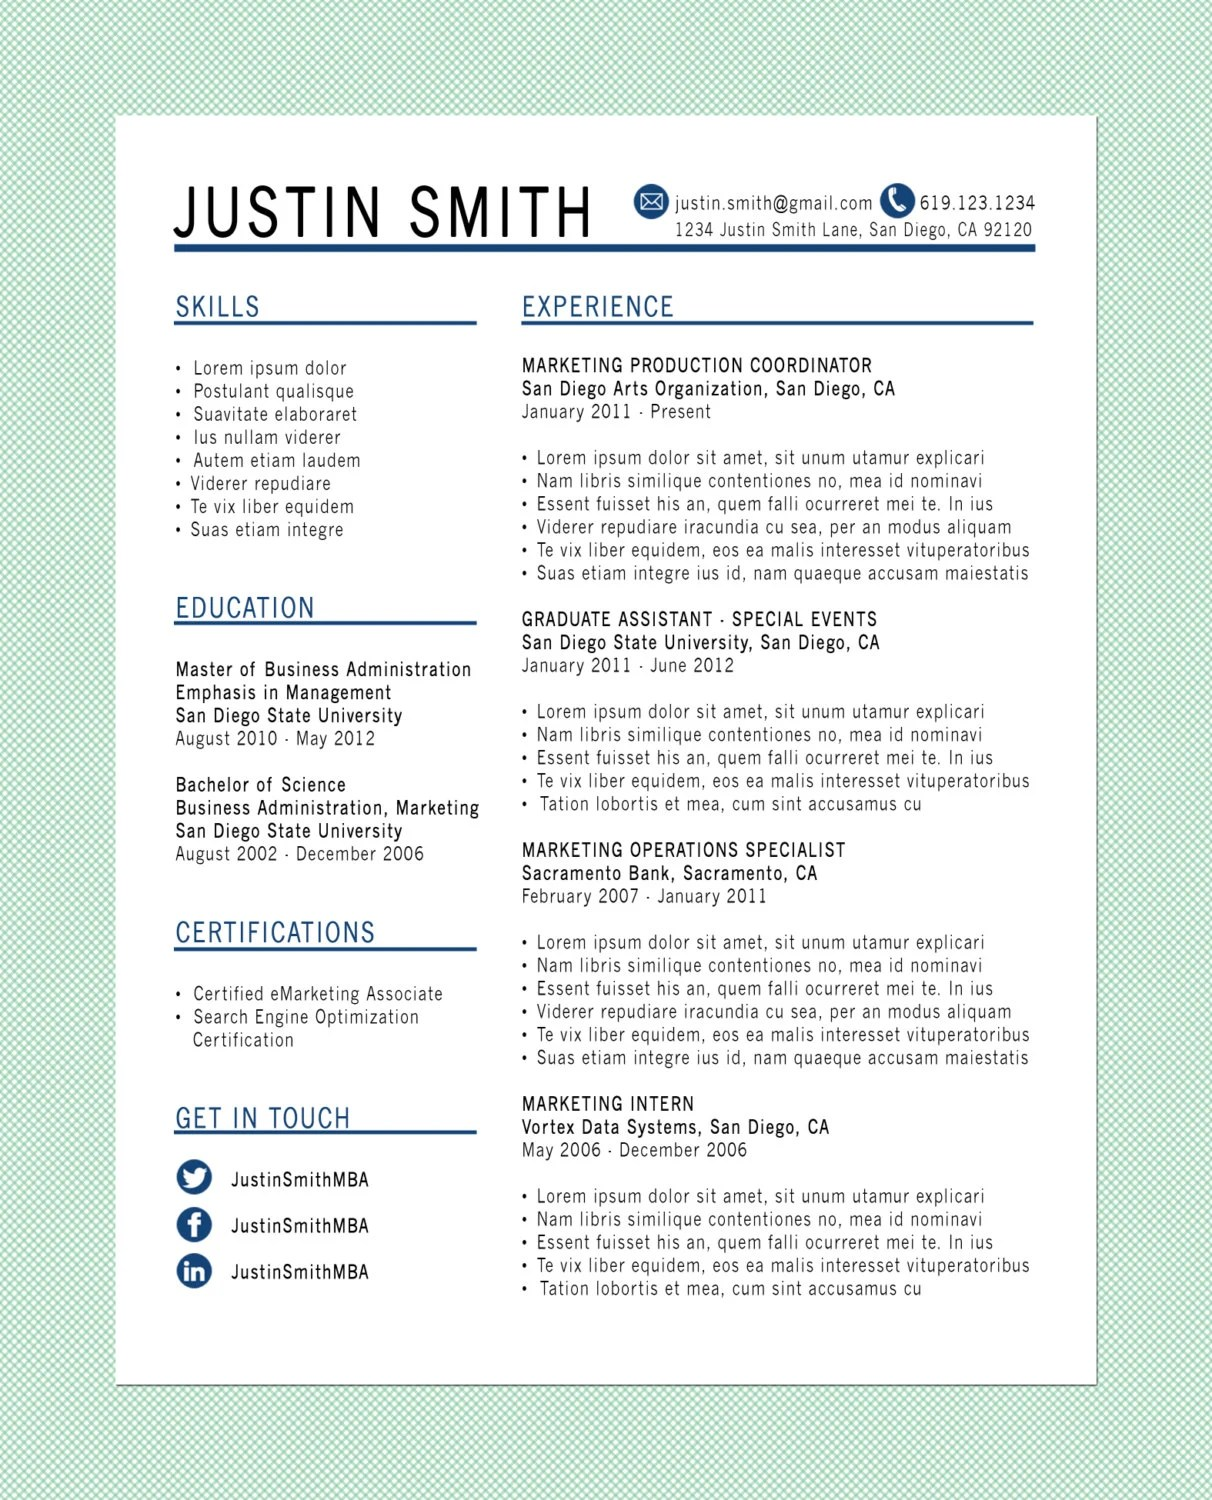 How To Select The File Format For Your Resume Customized Resume The Standard